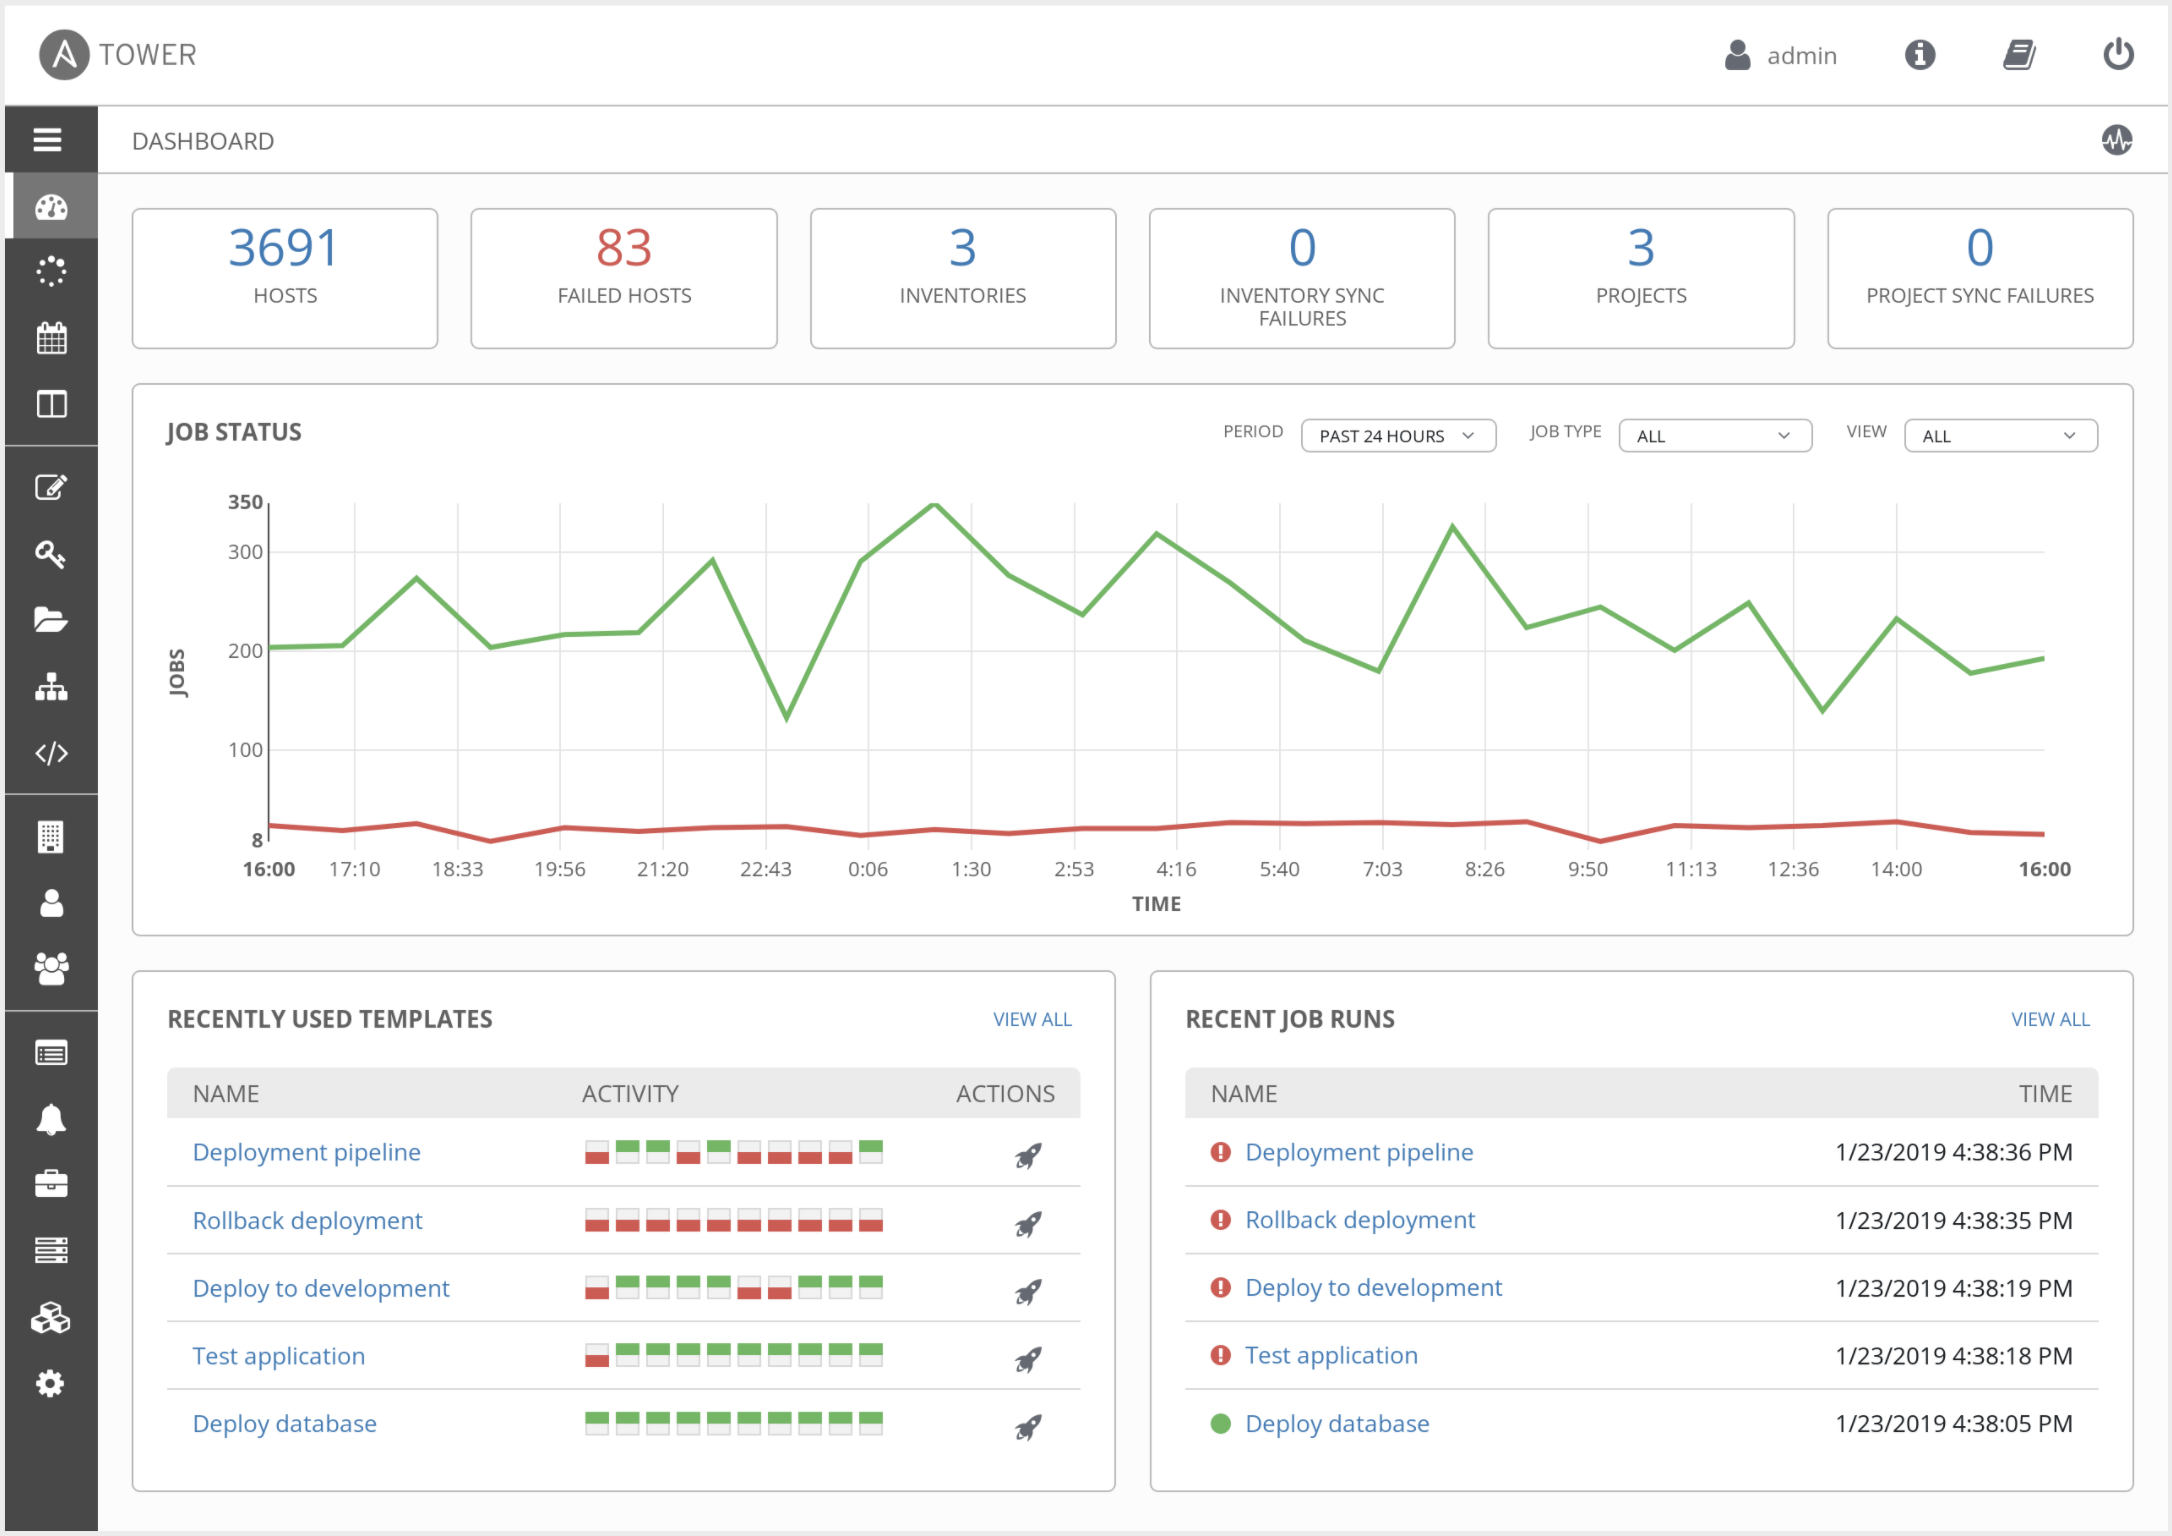 ansible-tower-dashboard-example